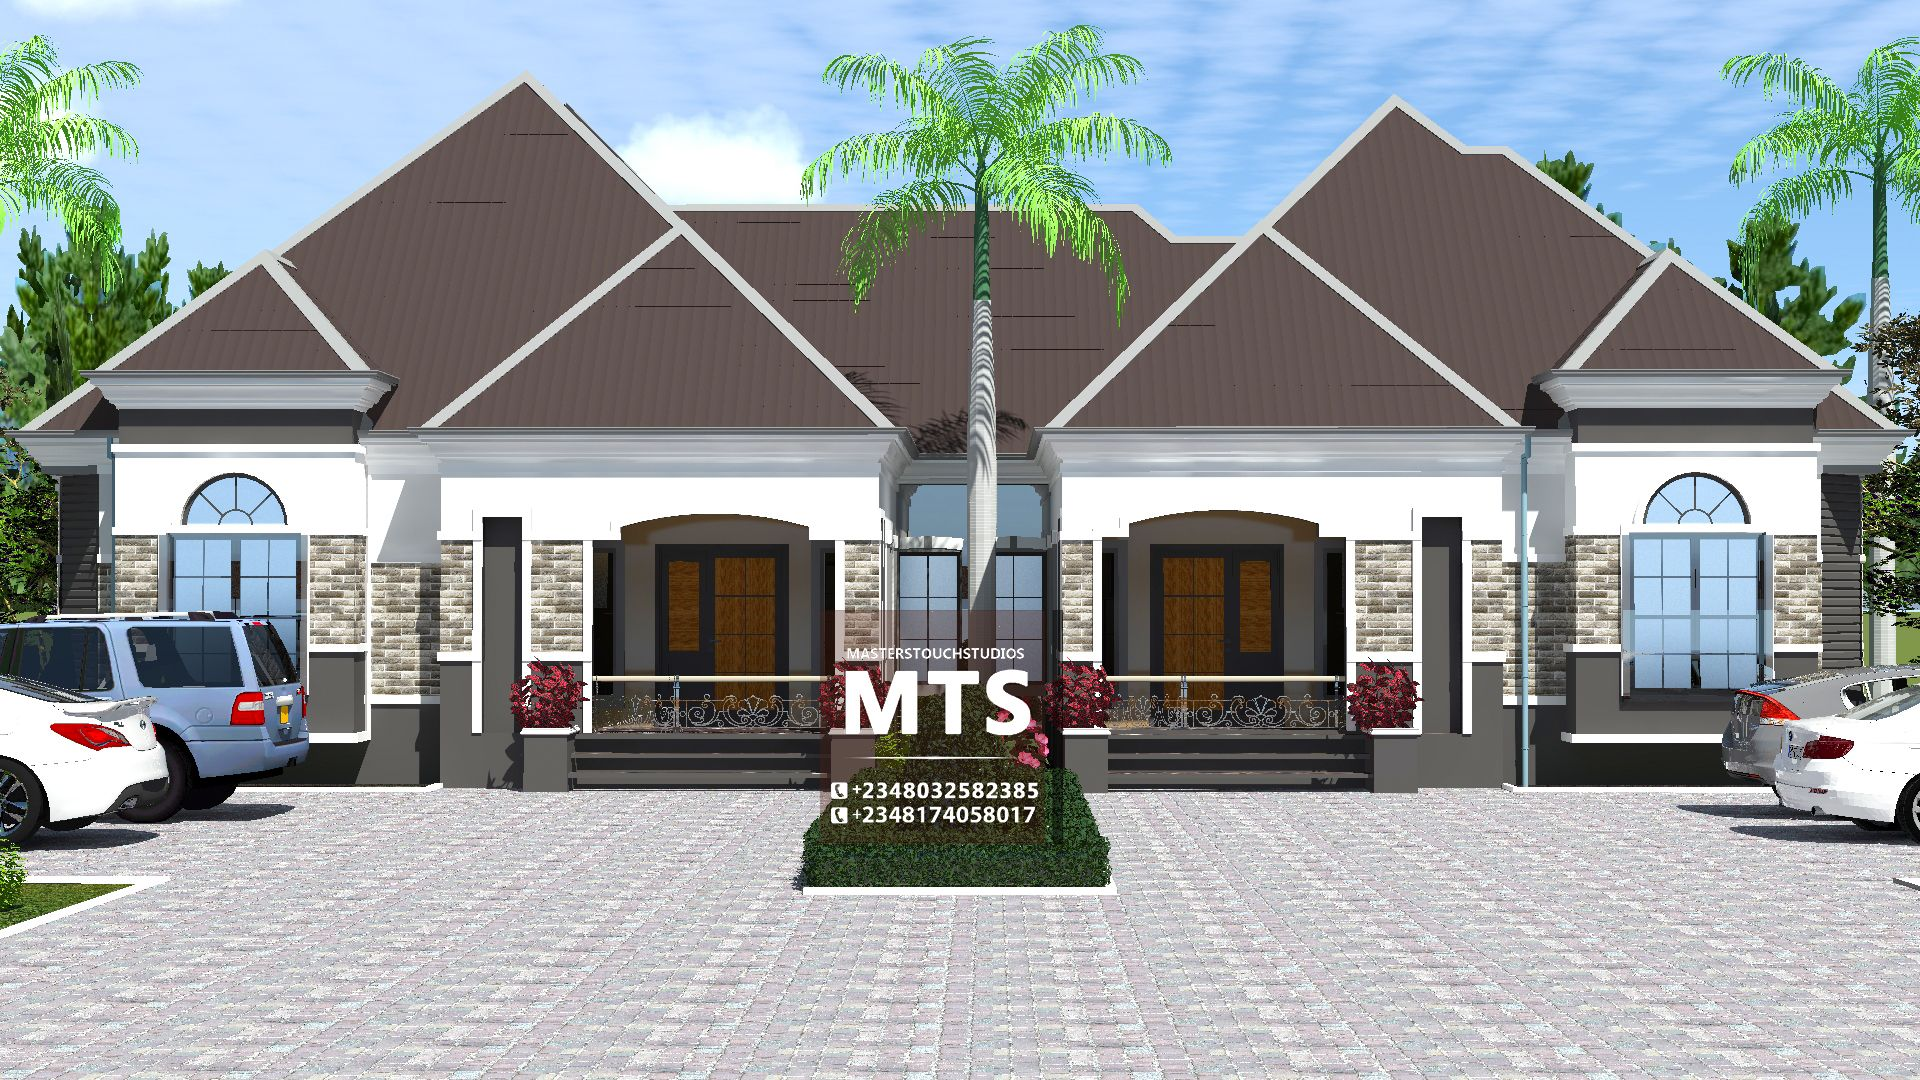 3 2 Bedroom Bungalow Rf Sd3201 In 2020 Bungalow House Design Architect Design House Bungalow Design